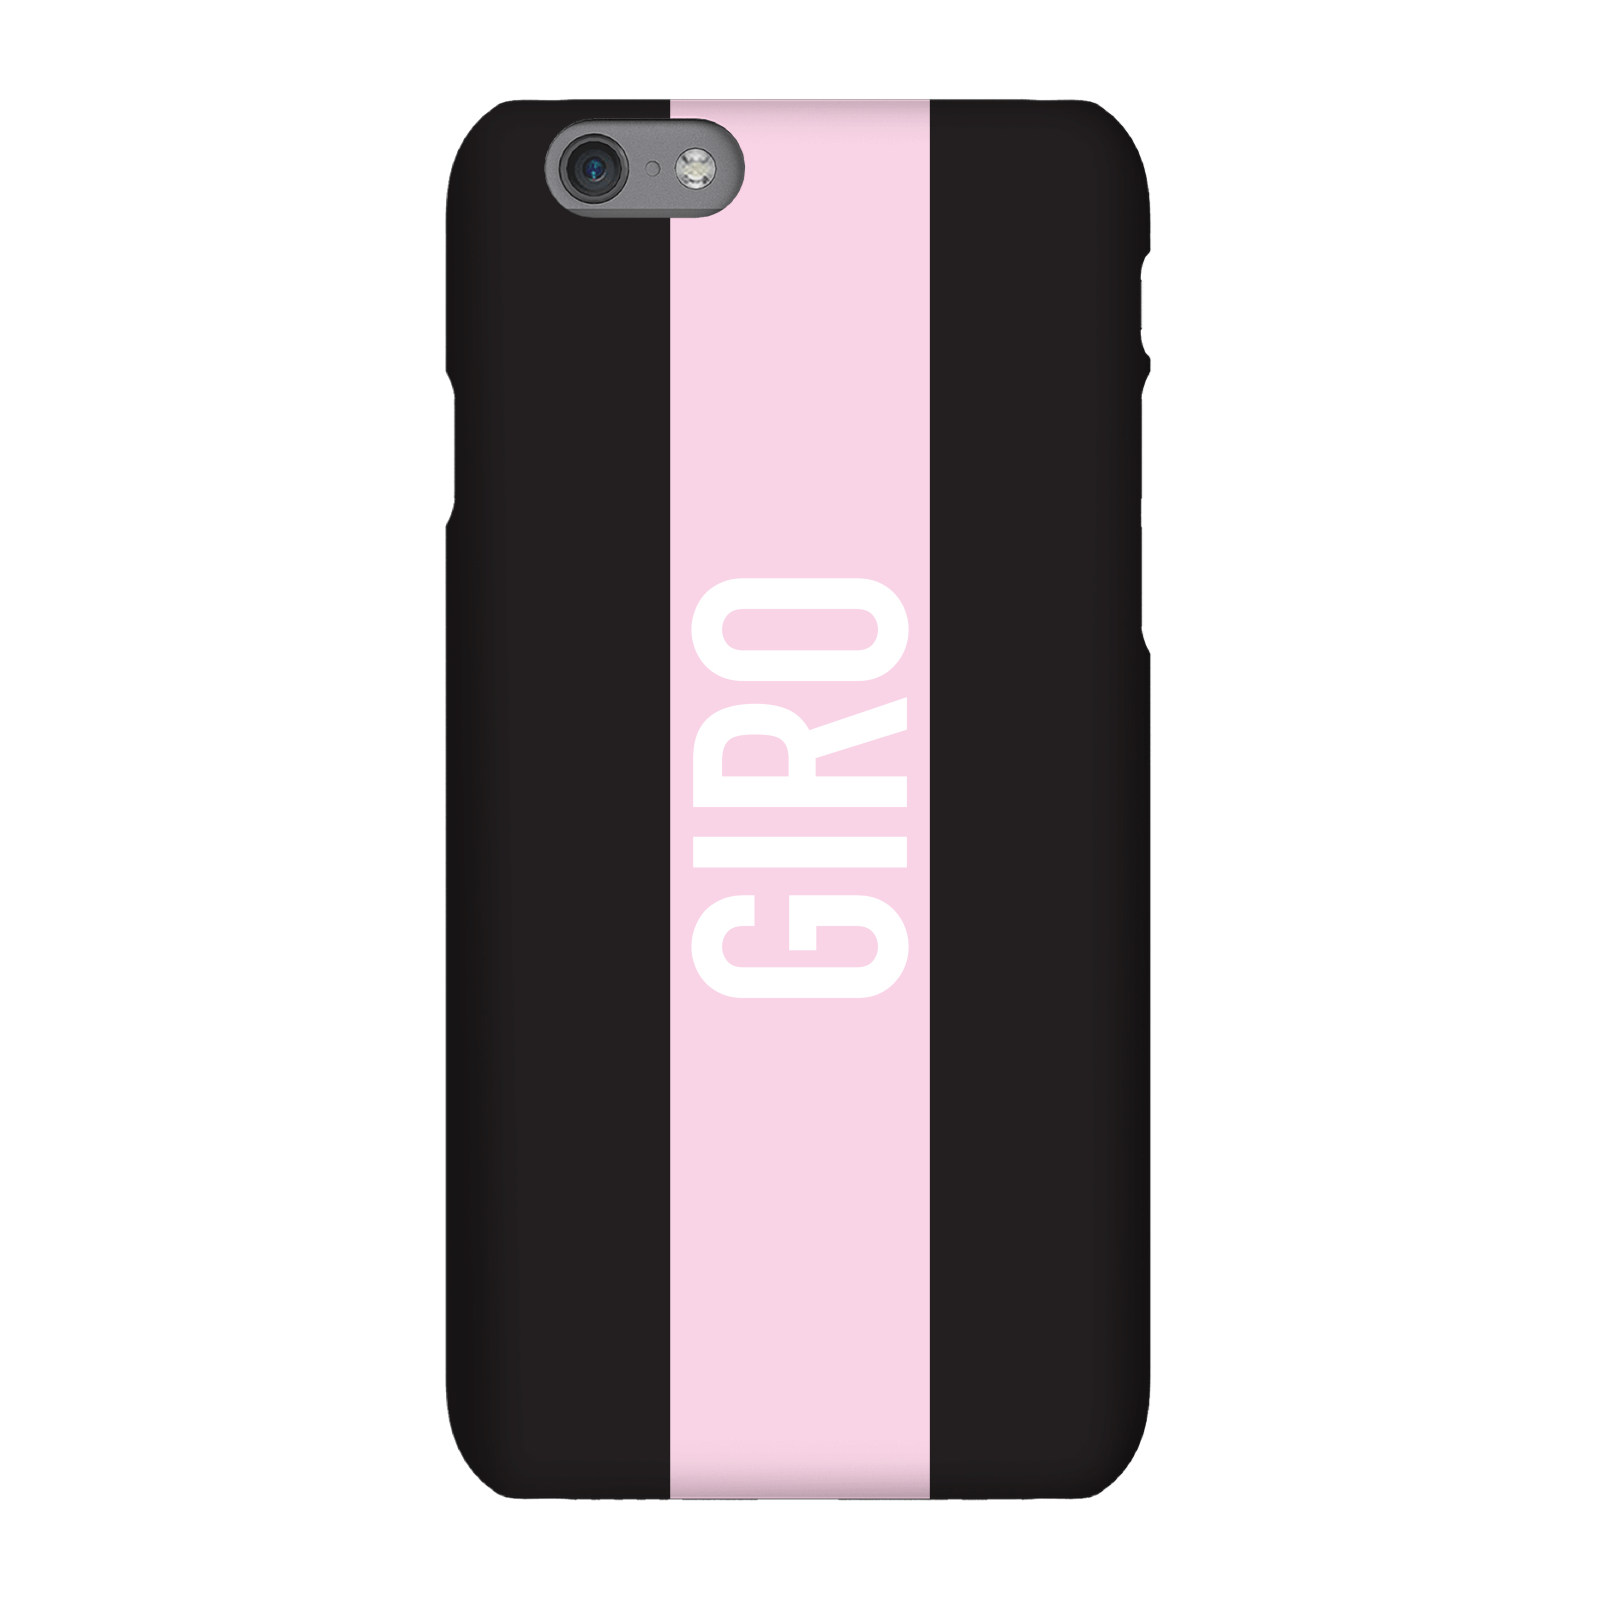 Giro Phone Case for iPhone and Android - iPhone 6 - Snap Case - Matte